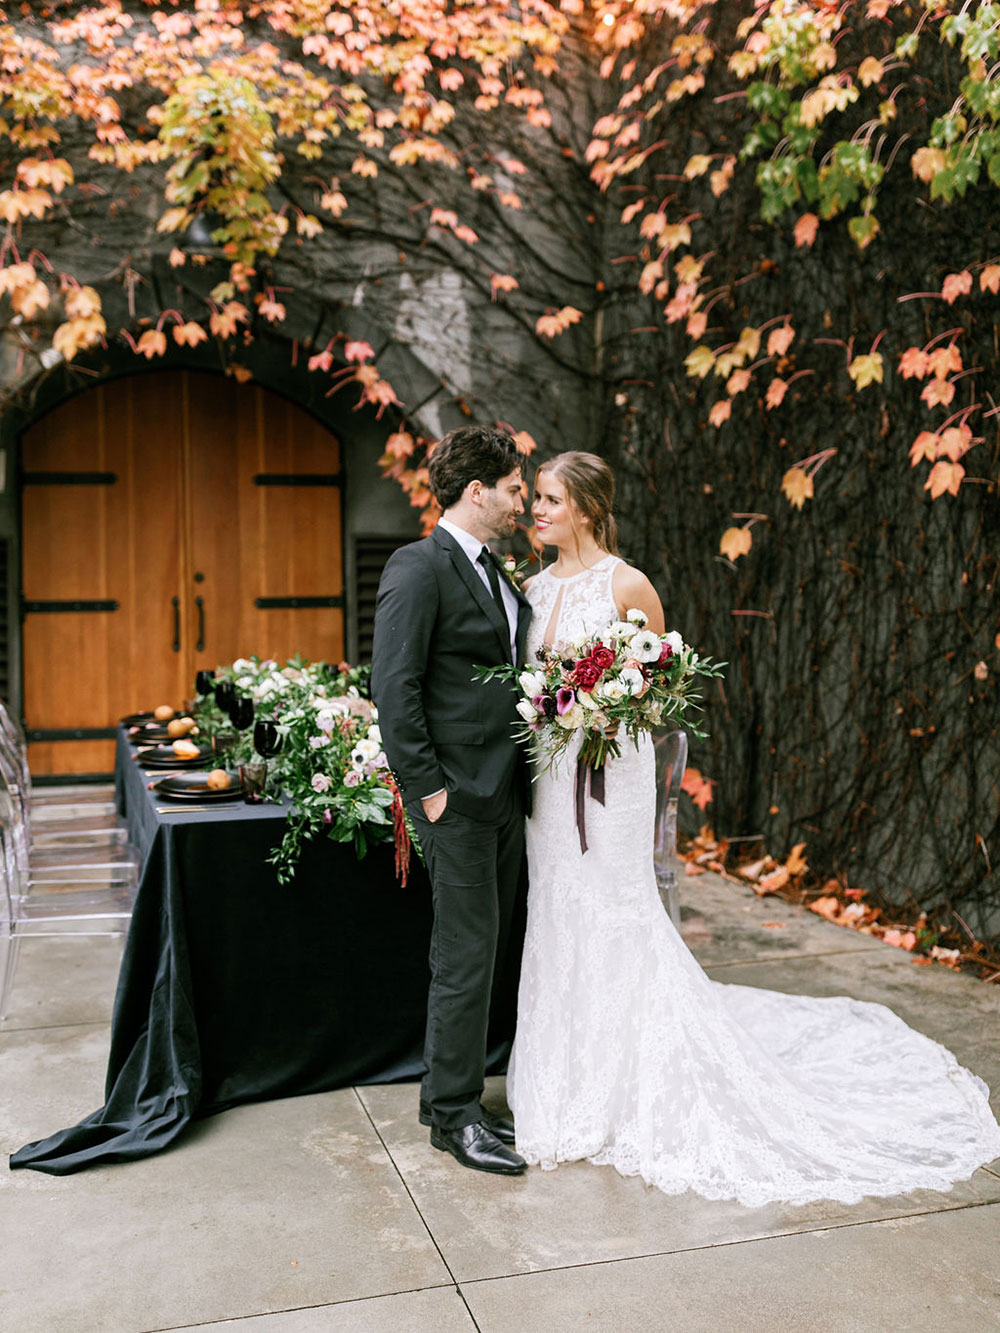 This refined winter wedding shoot shows how beautiful a micro wedding in Sonoma, California can be